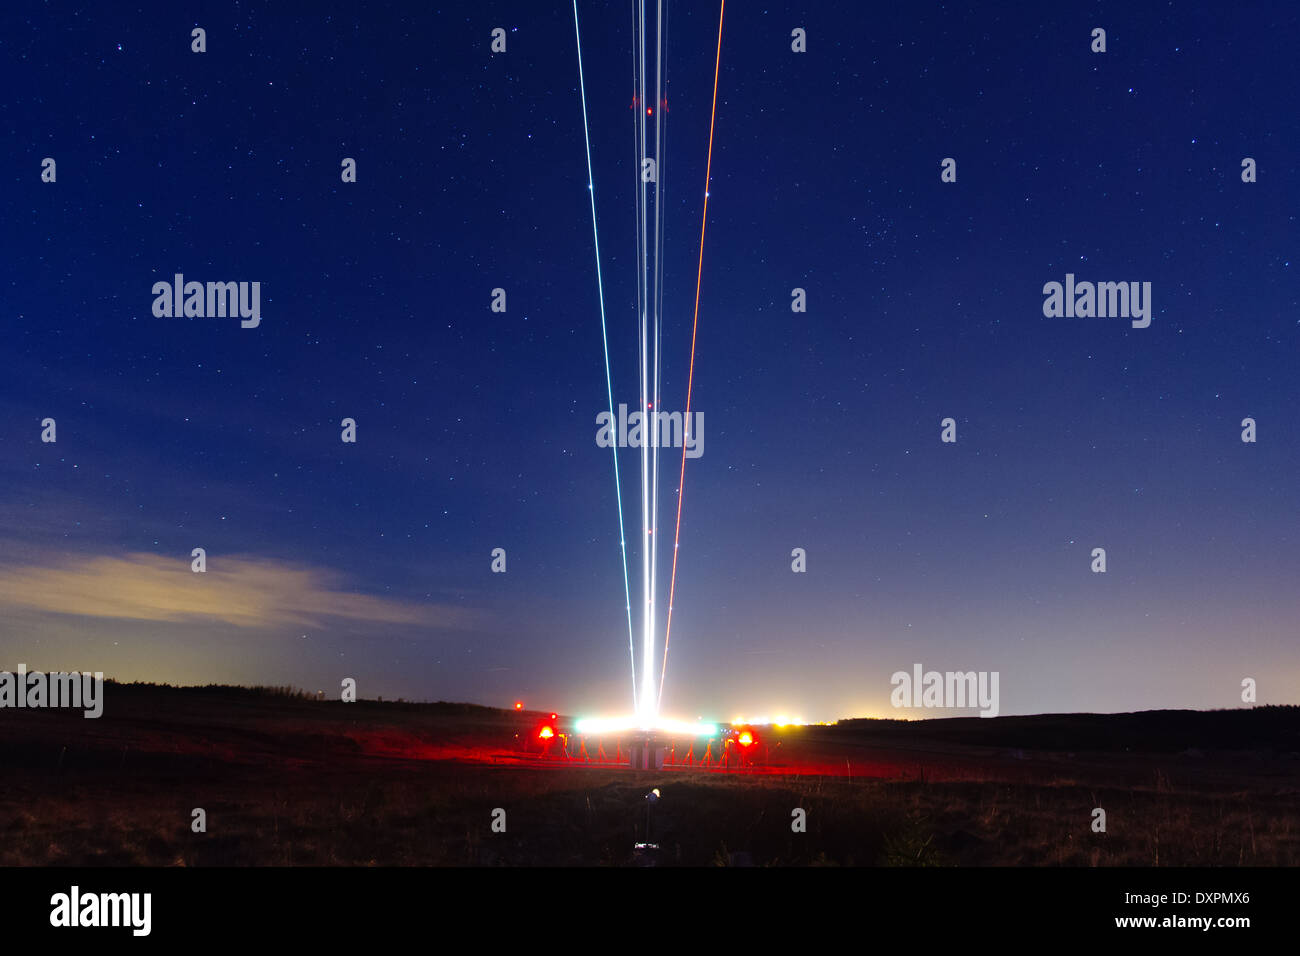 Plane starting at night at an airport, long time exposure - Stock Image